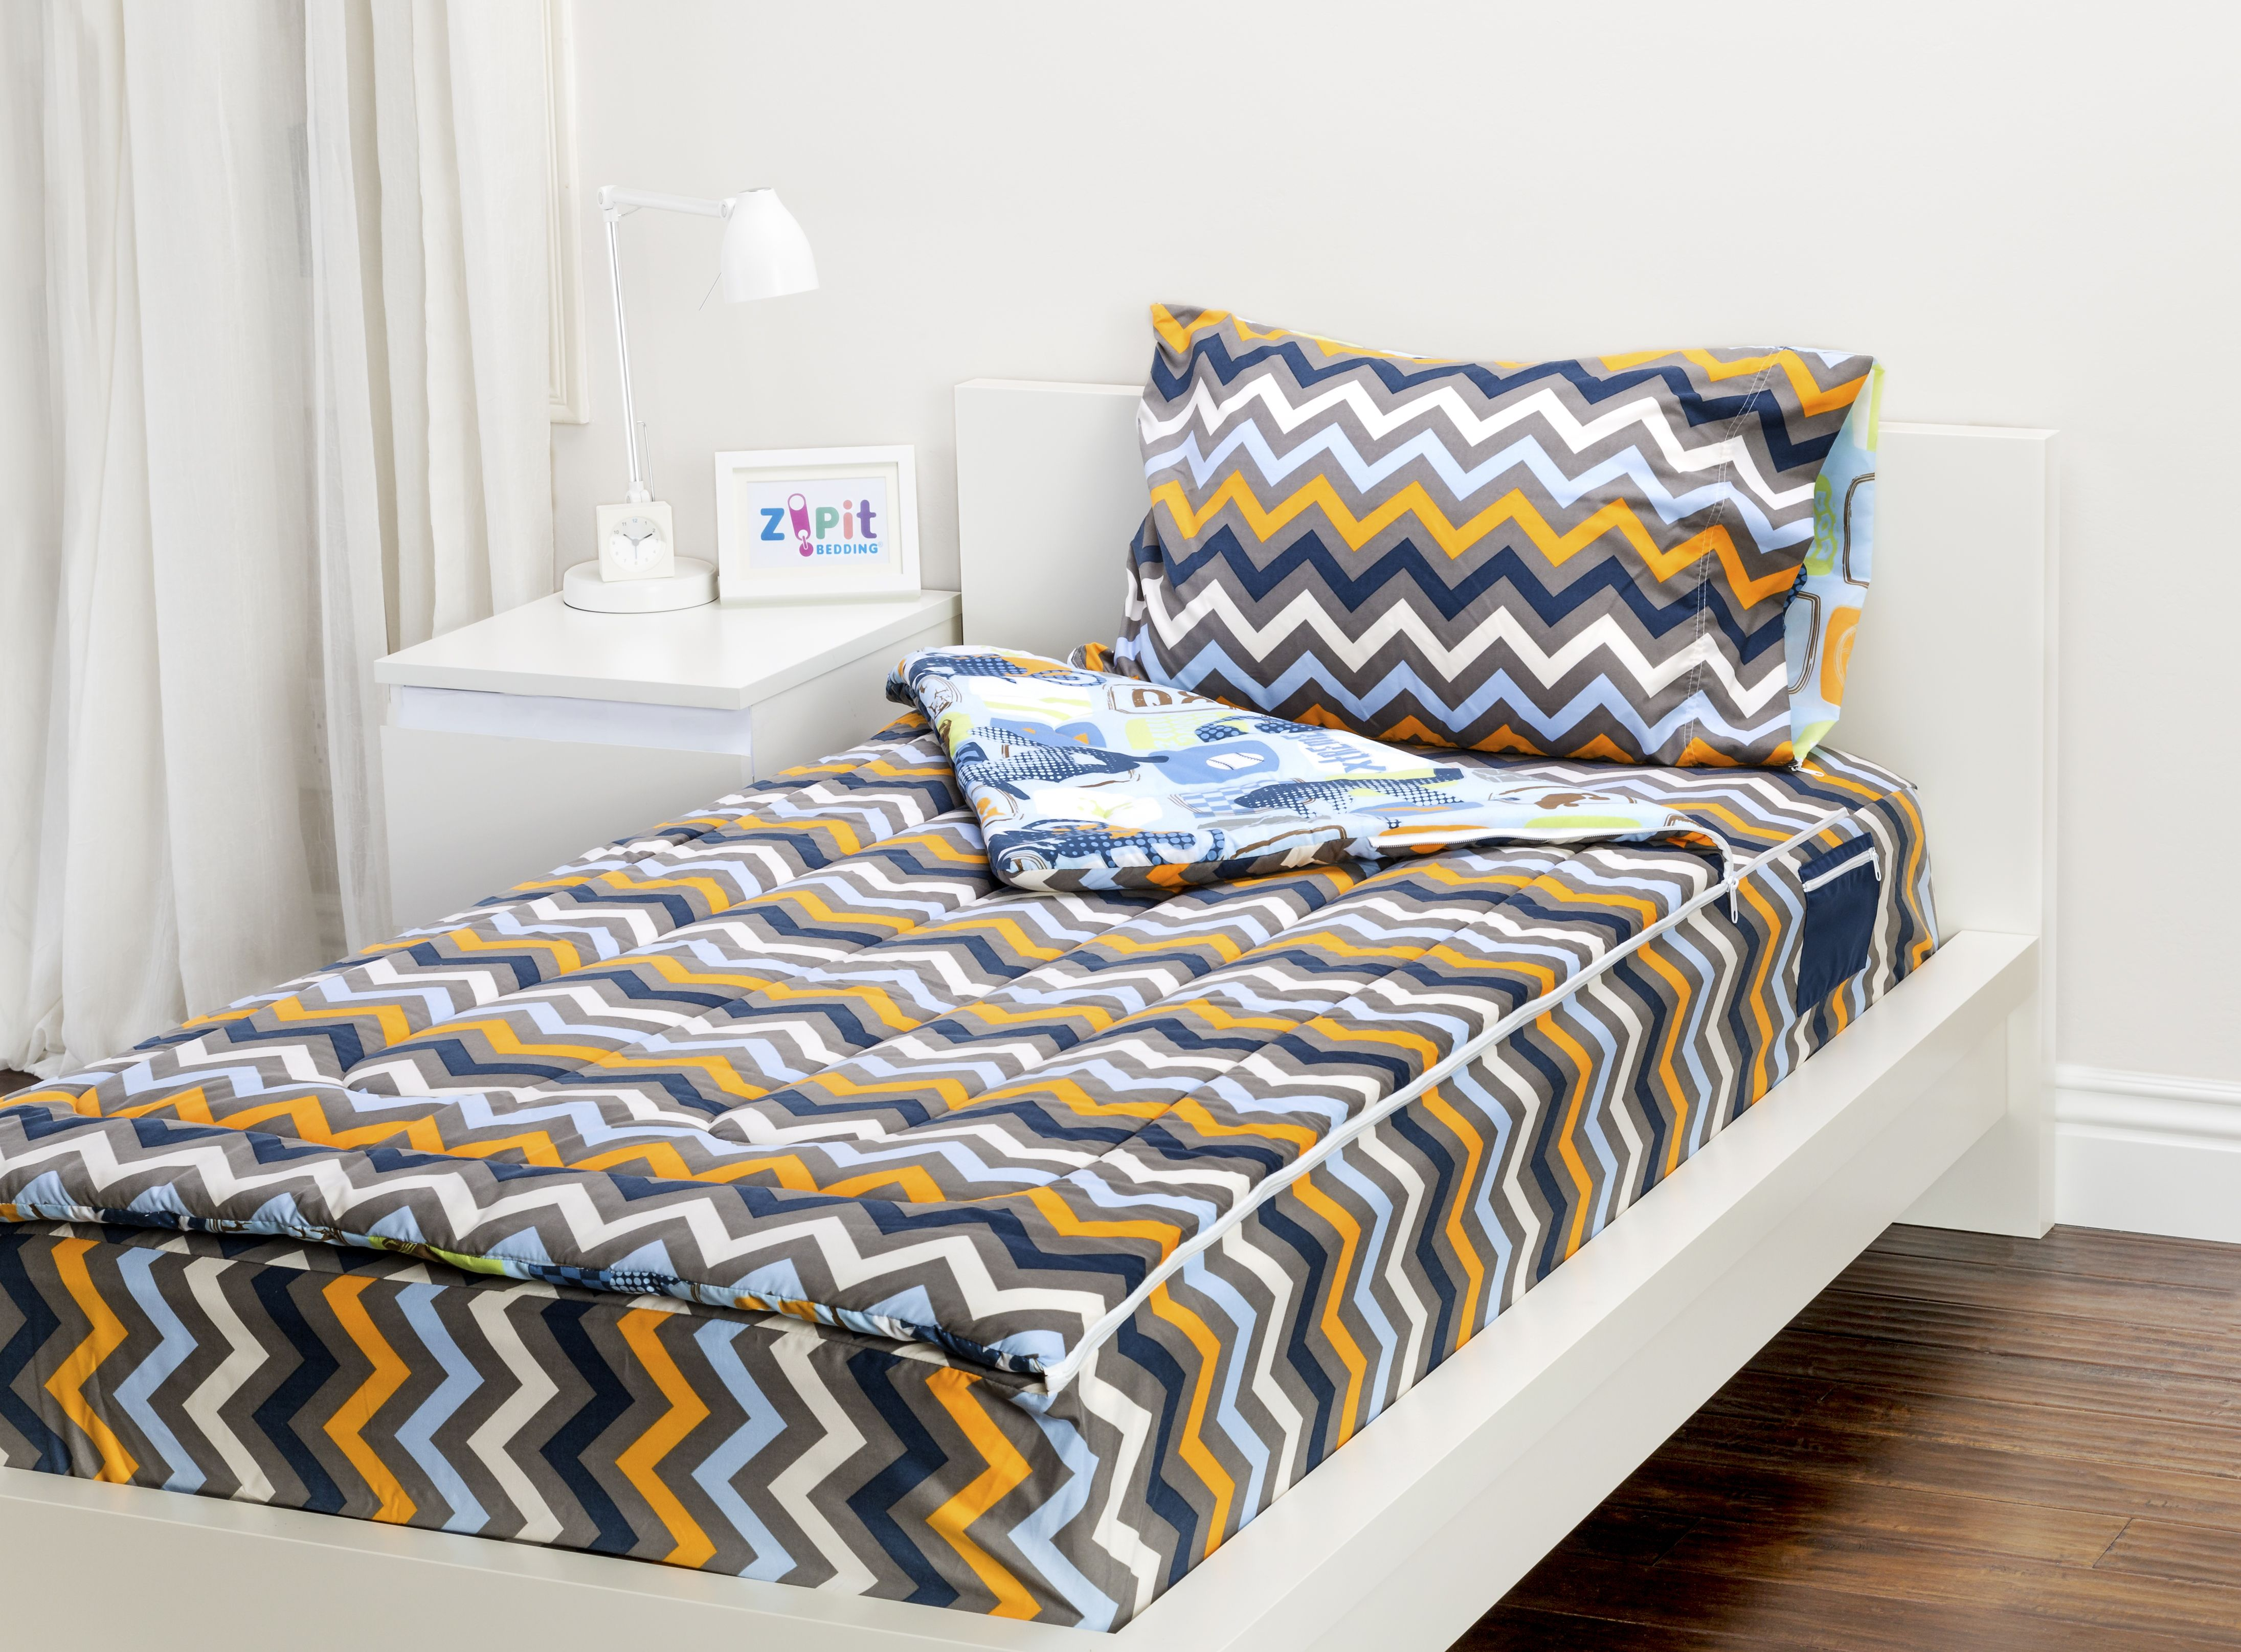 The Extreme Sports Zipit Bedding set is reversible! Zipit